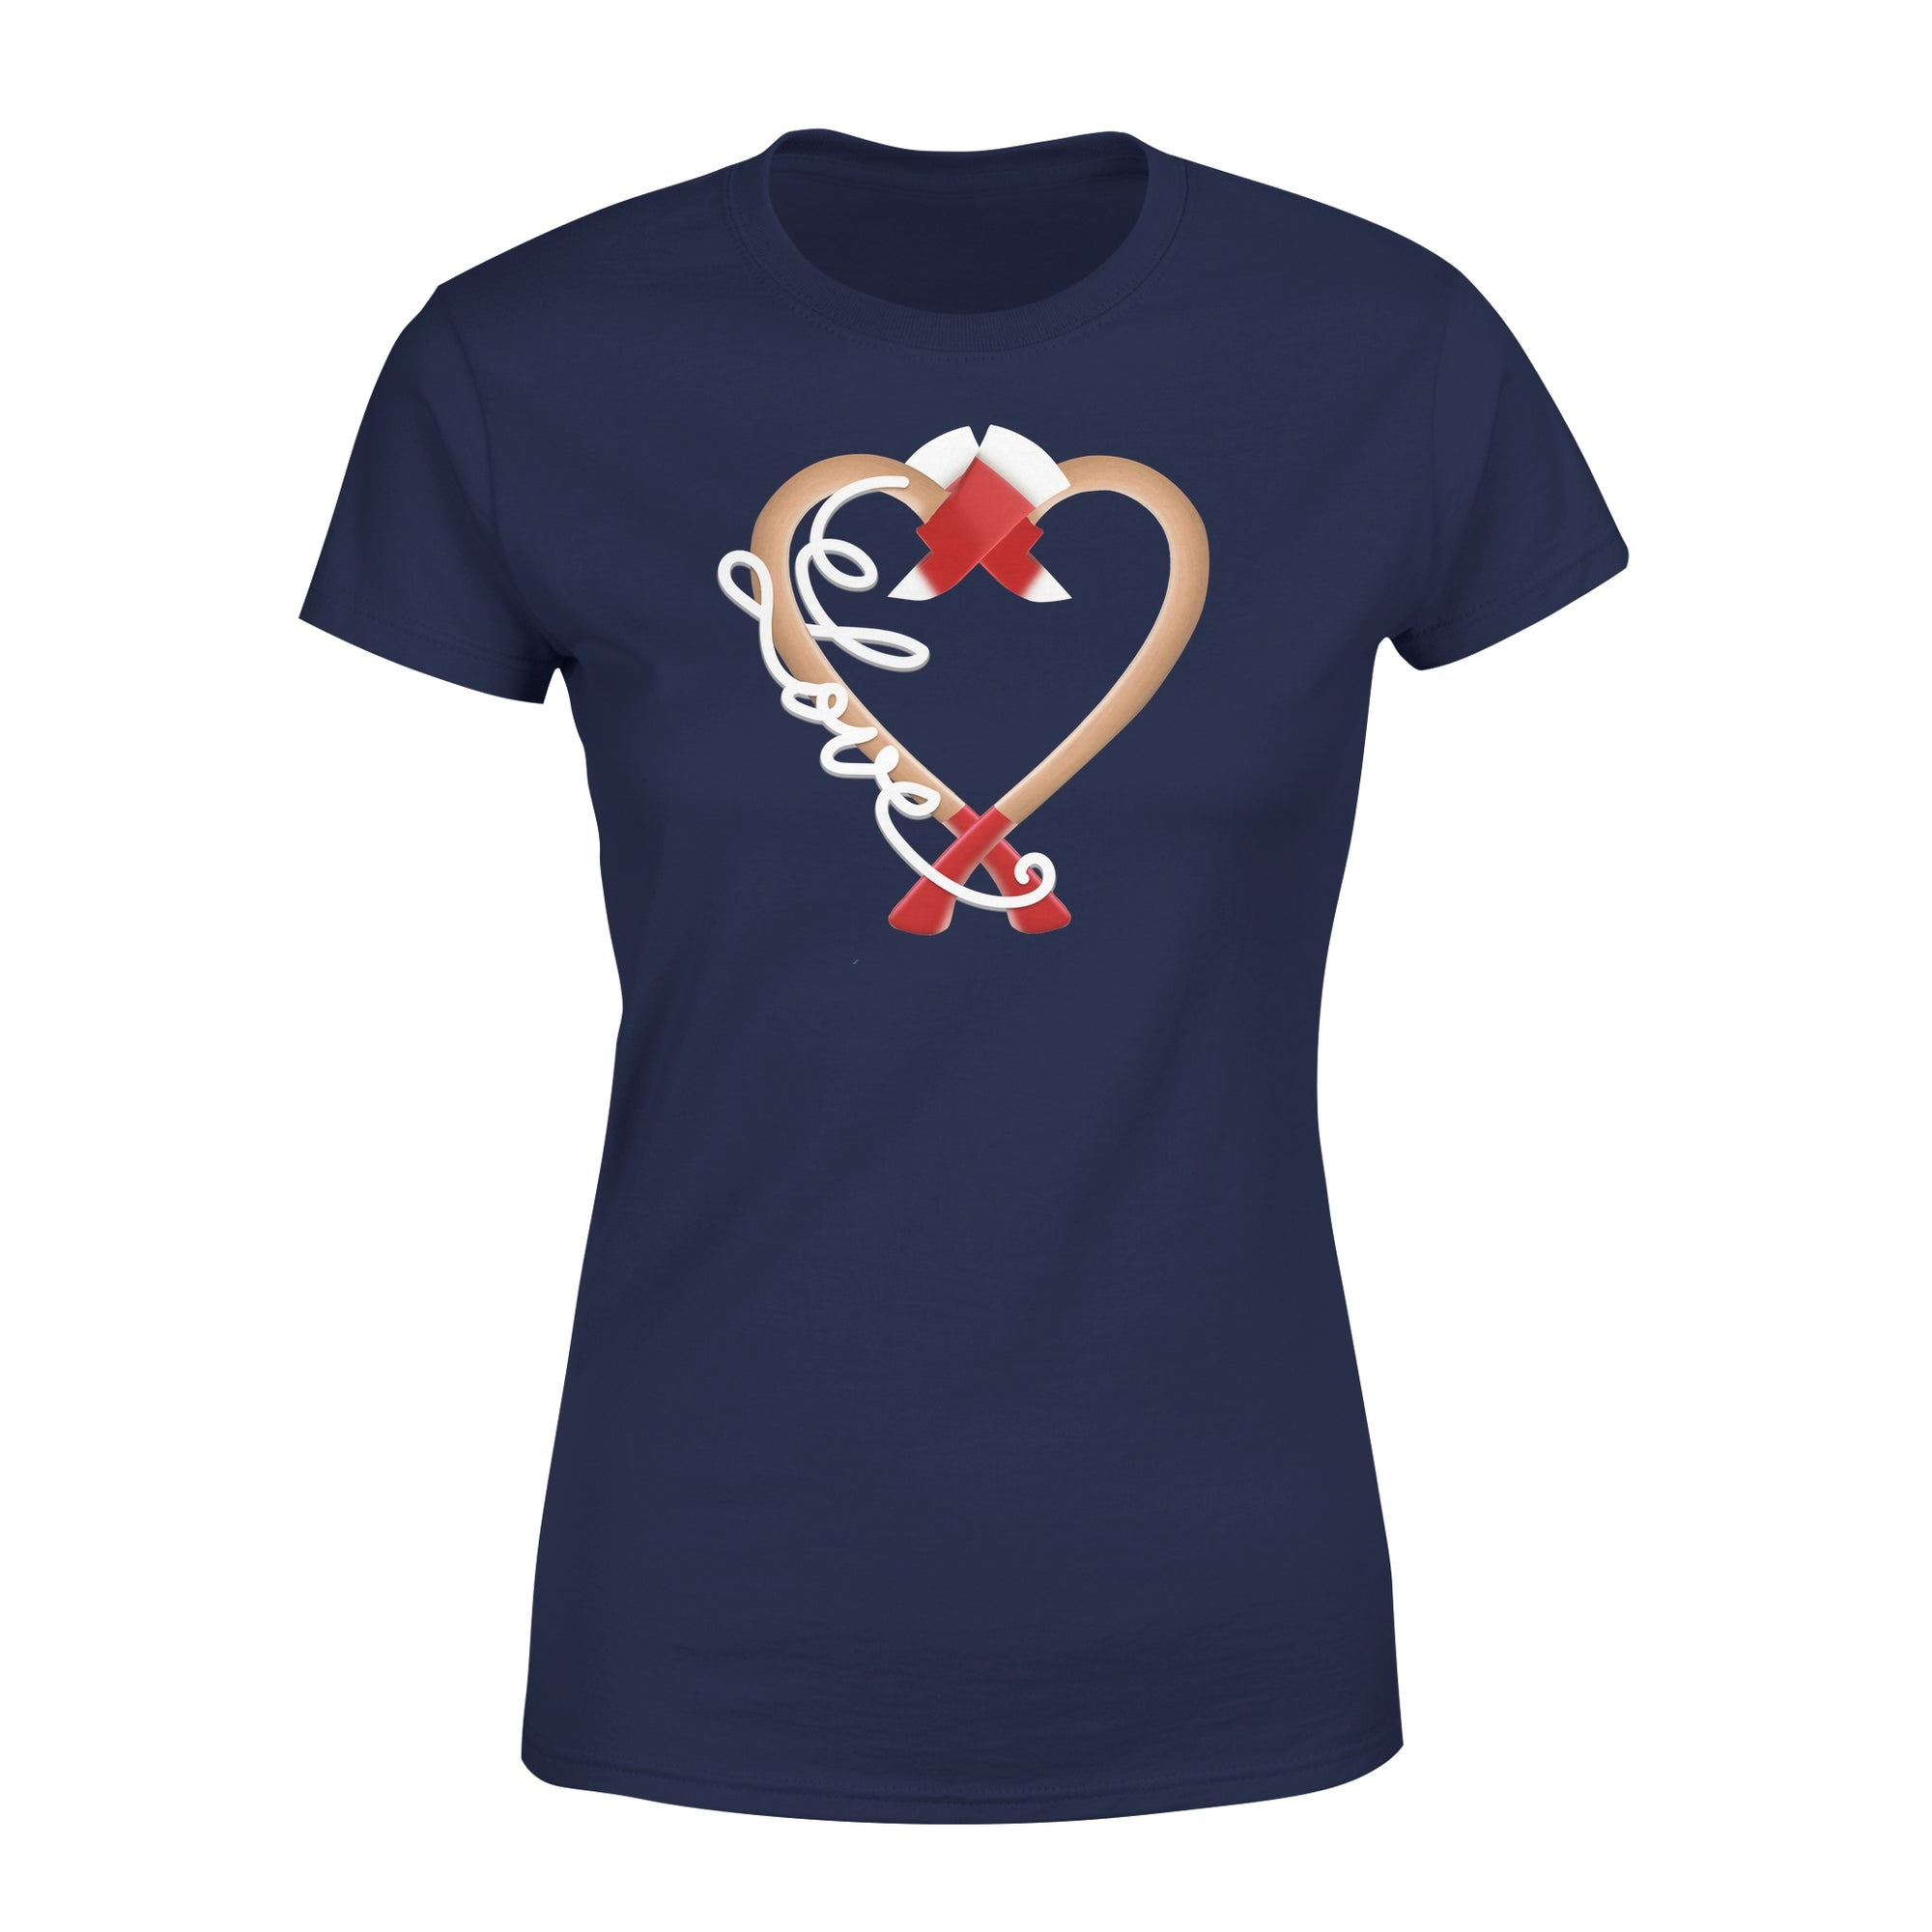 Vira Premium Women's Tee for firefighter lovers